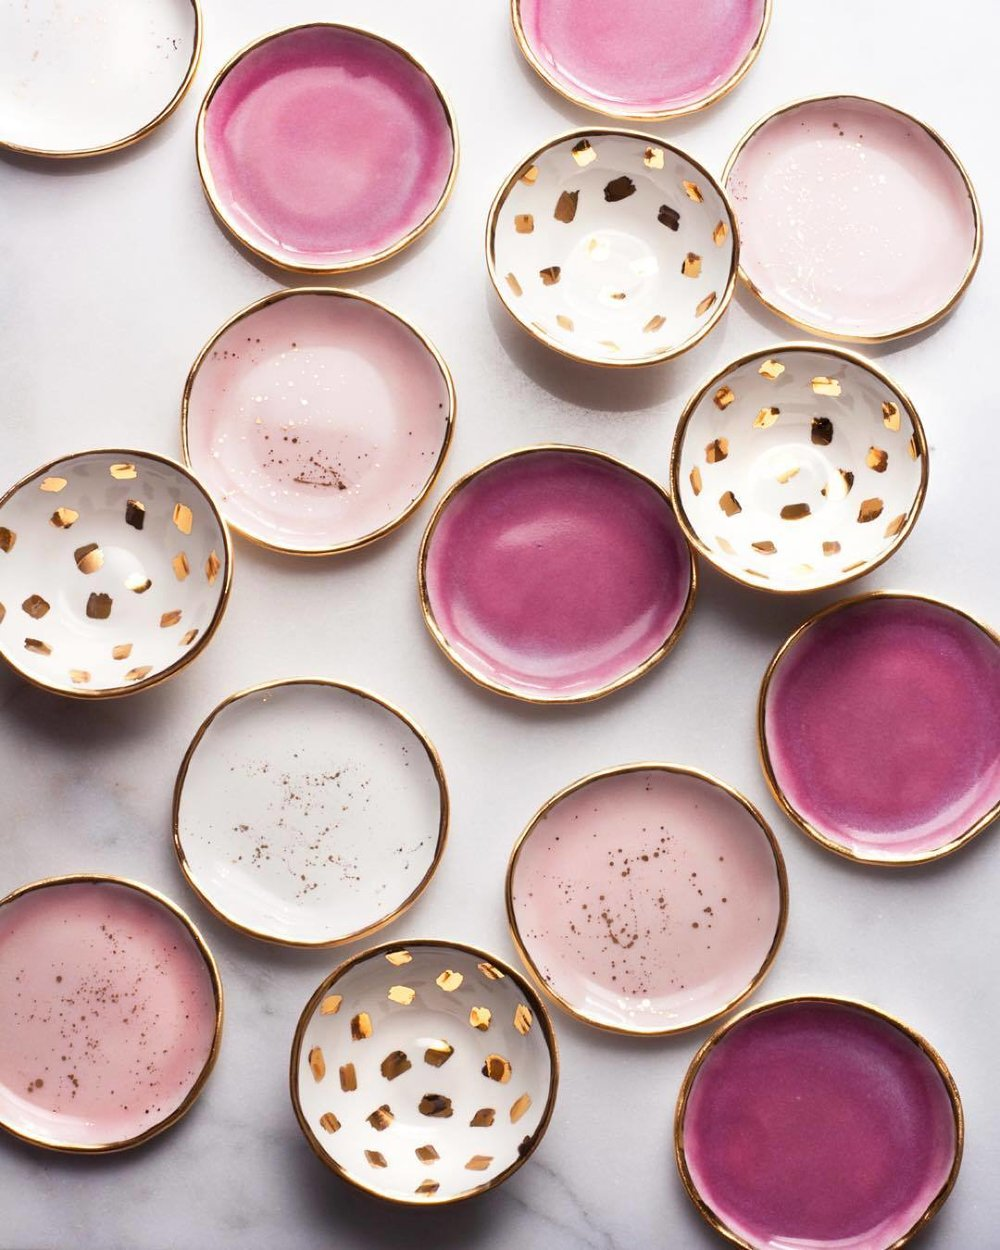 Ceramics - Ceramics are quite possibly the easiest ways of incorporating blushes into your home. A simple blush vase, bowl, or even some mugs if you're trying to soften your kitchen all work to tie a room's aesthetic together.